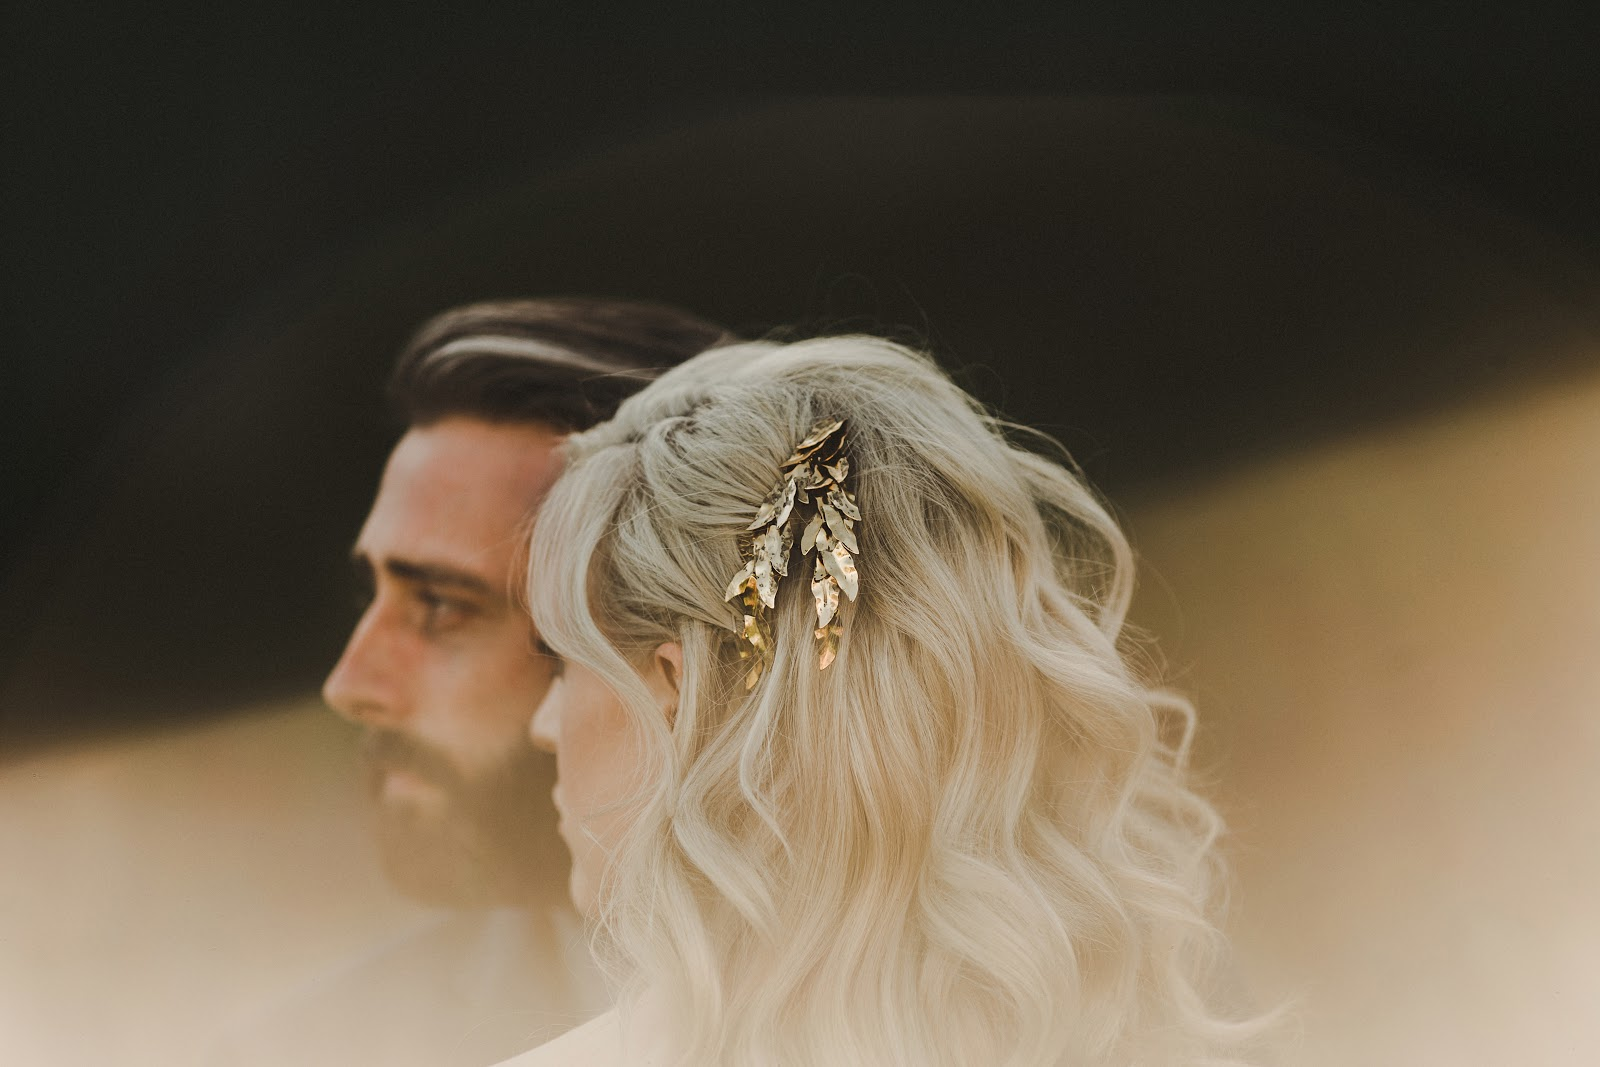 HOWE ABOUT FOREVA - Vancouver urban woodshop wedding by Shari + Mike photographers - bride and groom, Jennifer Behr hairpiece